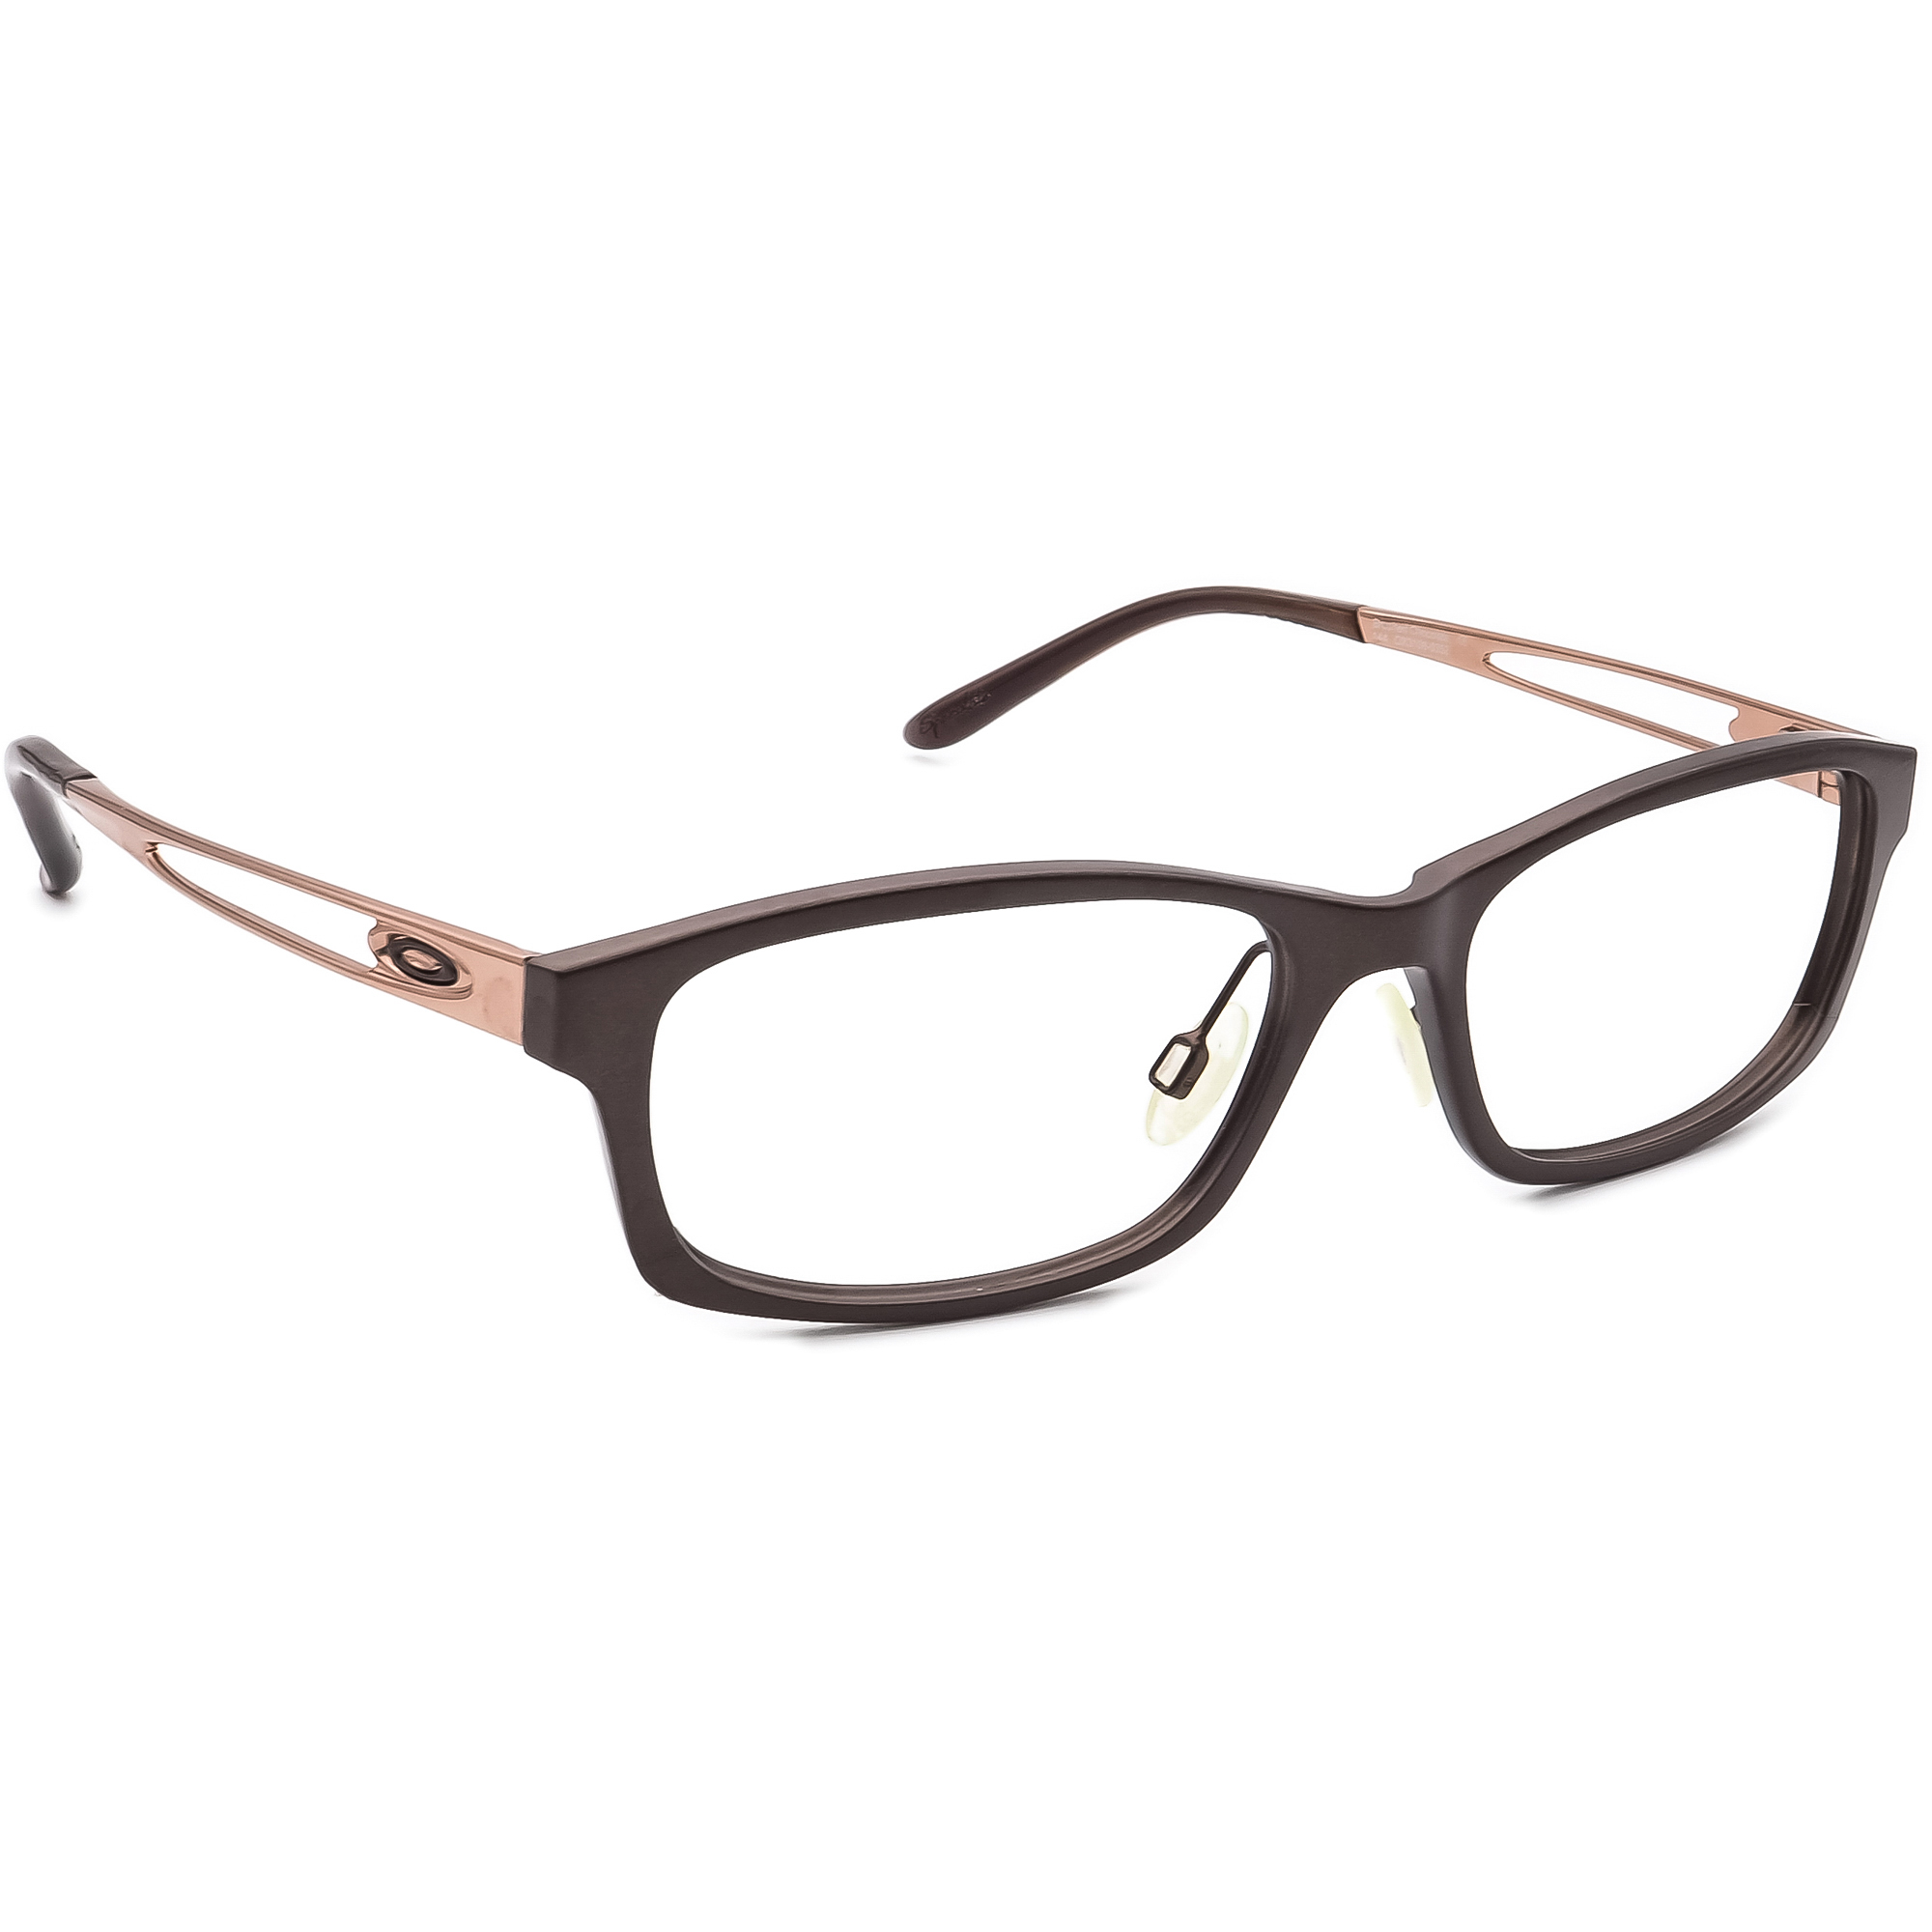 Oakley OX3108-0352 Speculate